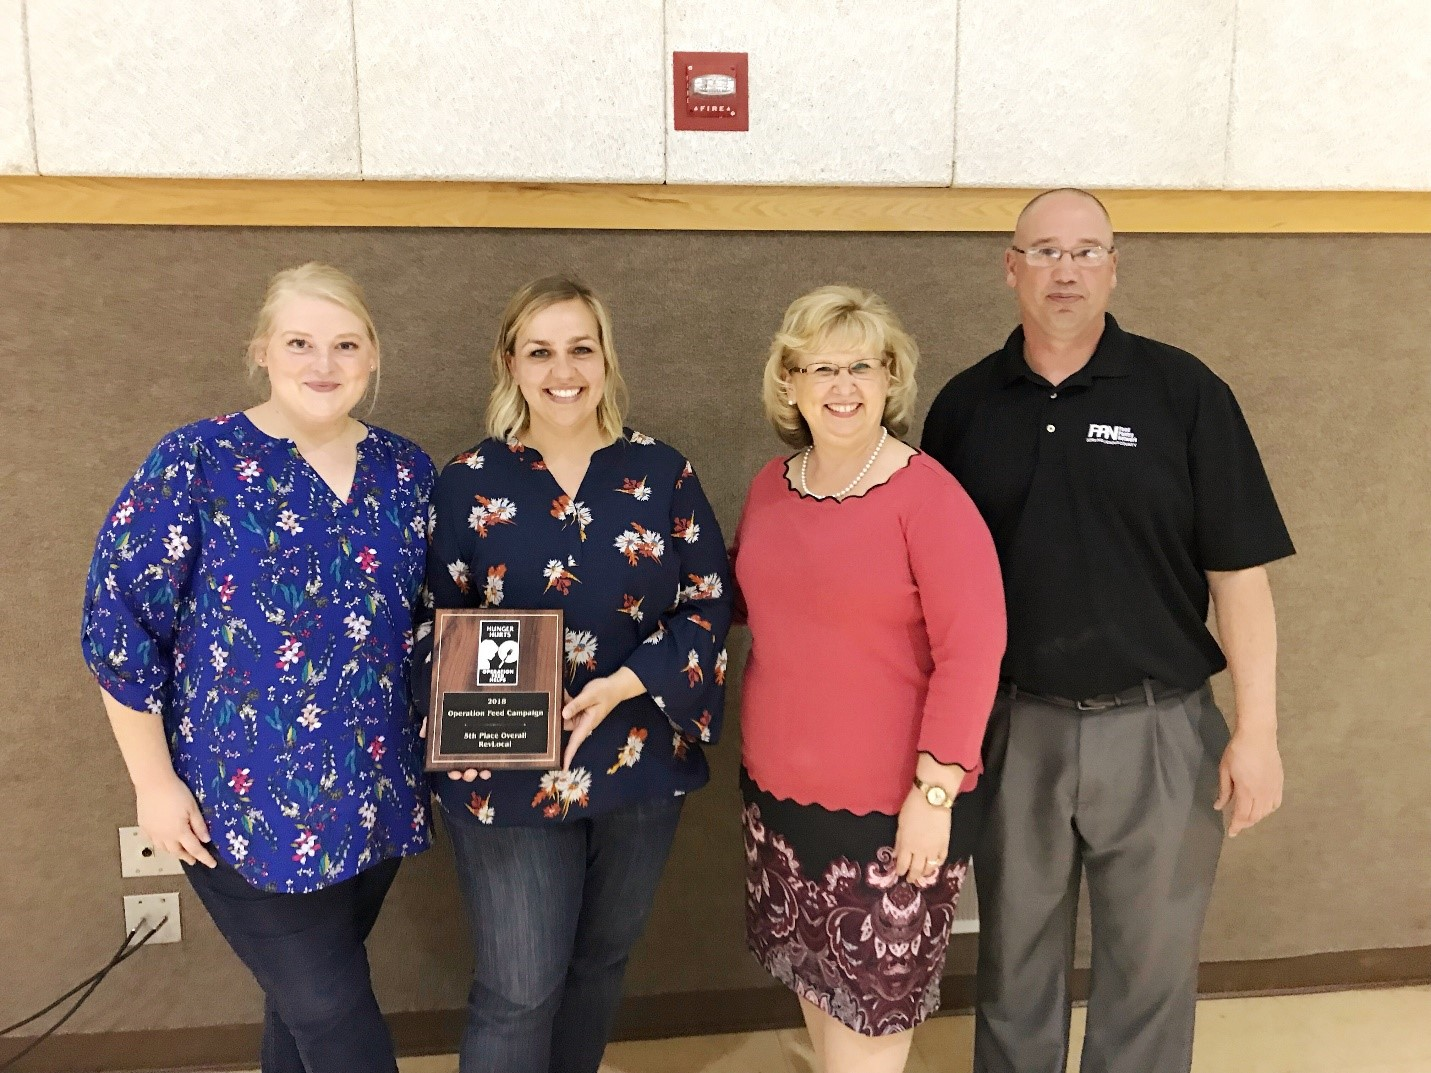 RevLocal employees received award from Licking County Food Pantry Network for 2018 Operation Feed campaign